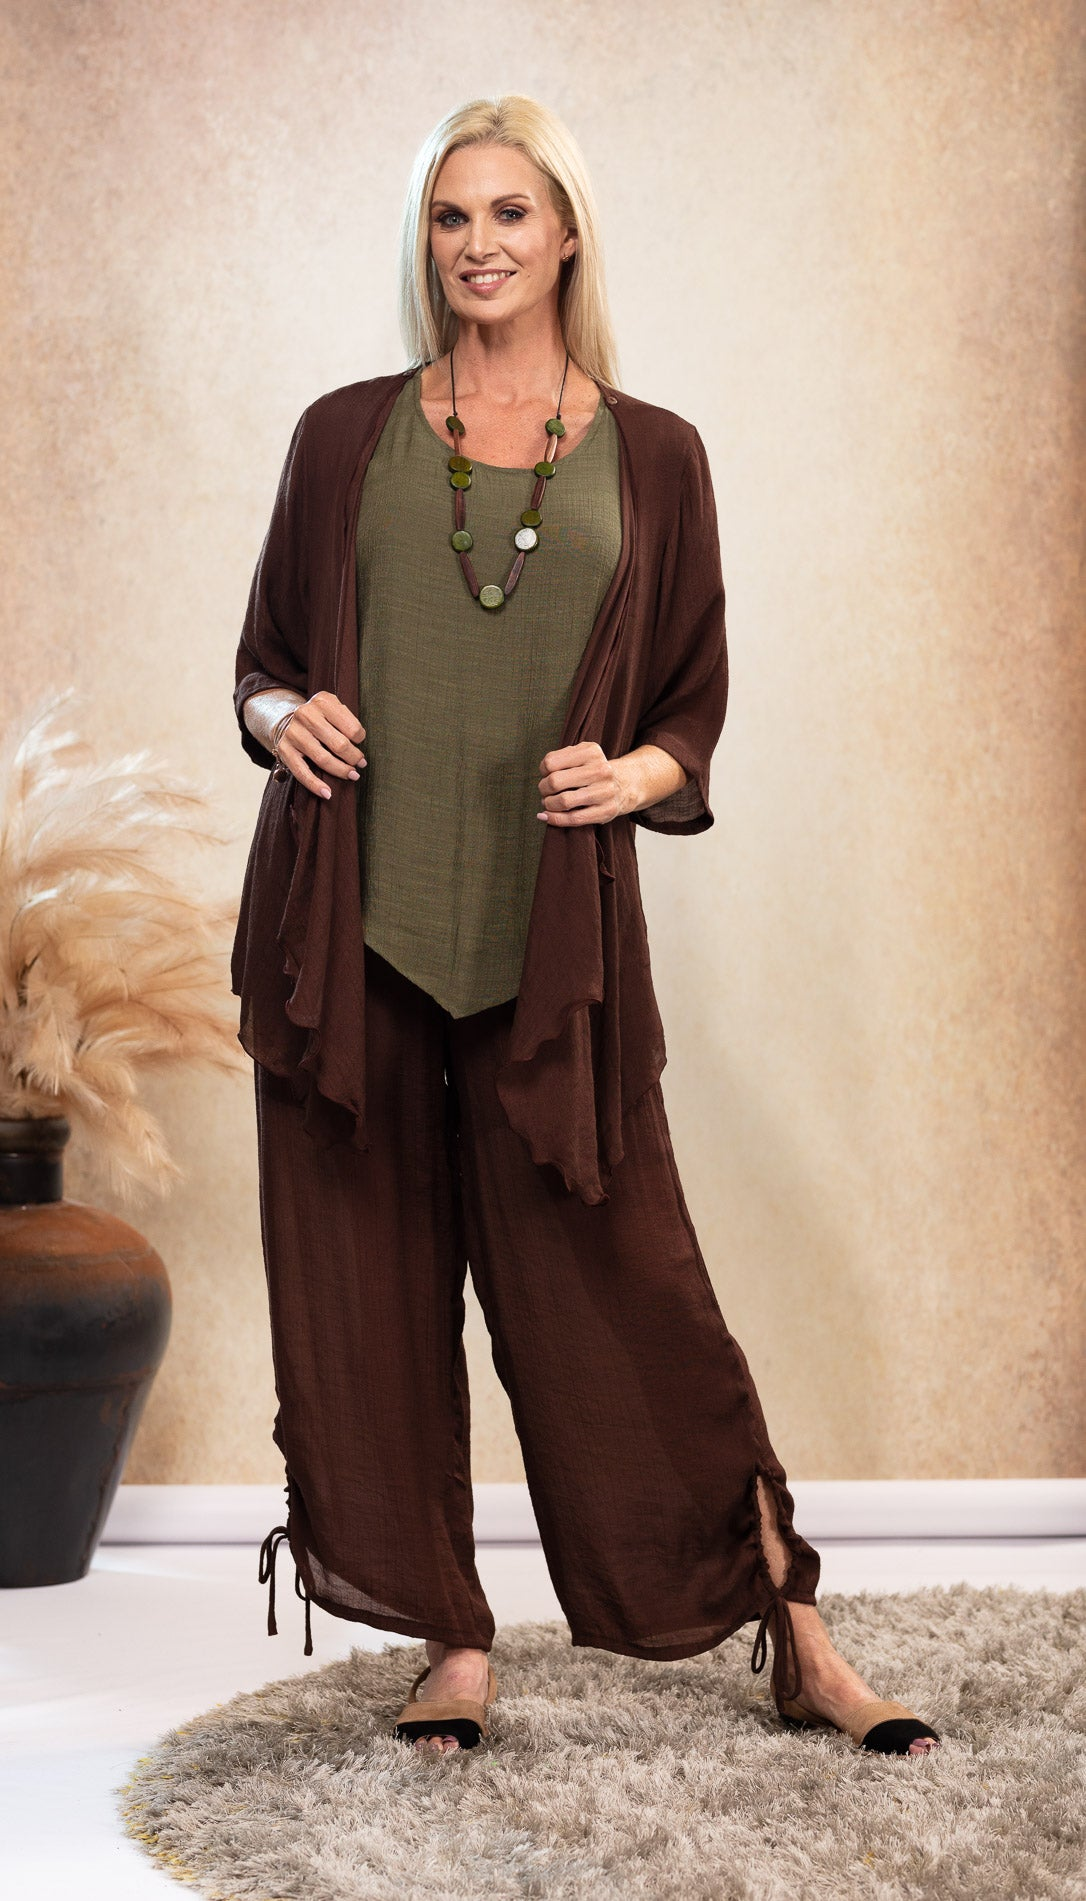 Long Bamboo Pants. Chocolate Brown Pants. Olive Khaki Green Bamboo Top. Chocolate Brown Jacket. Black and Tan Sandals. Suede Avarca Sandals. Natural Look.